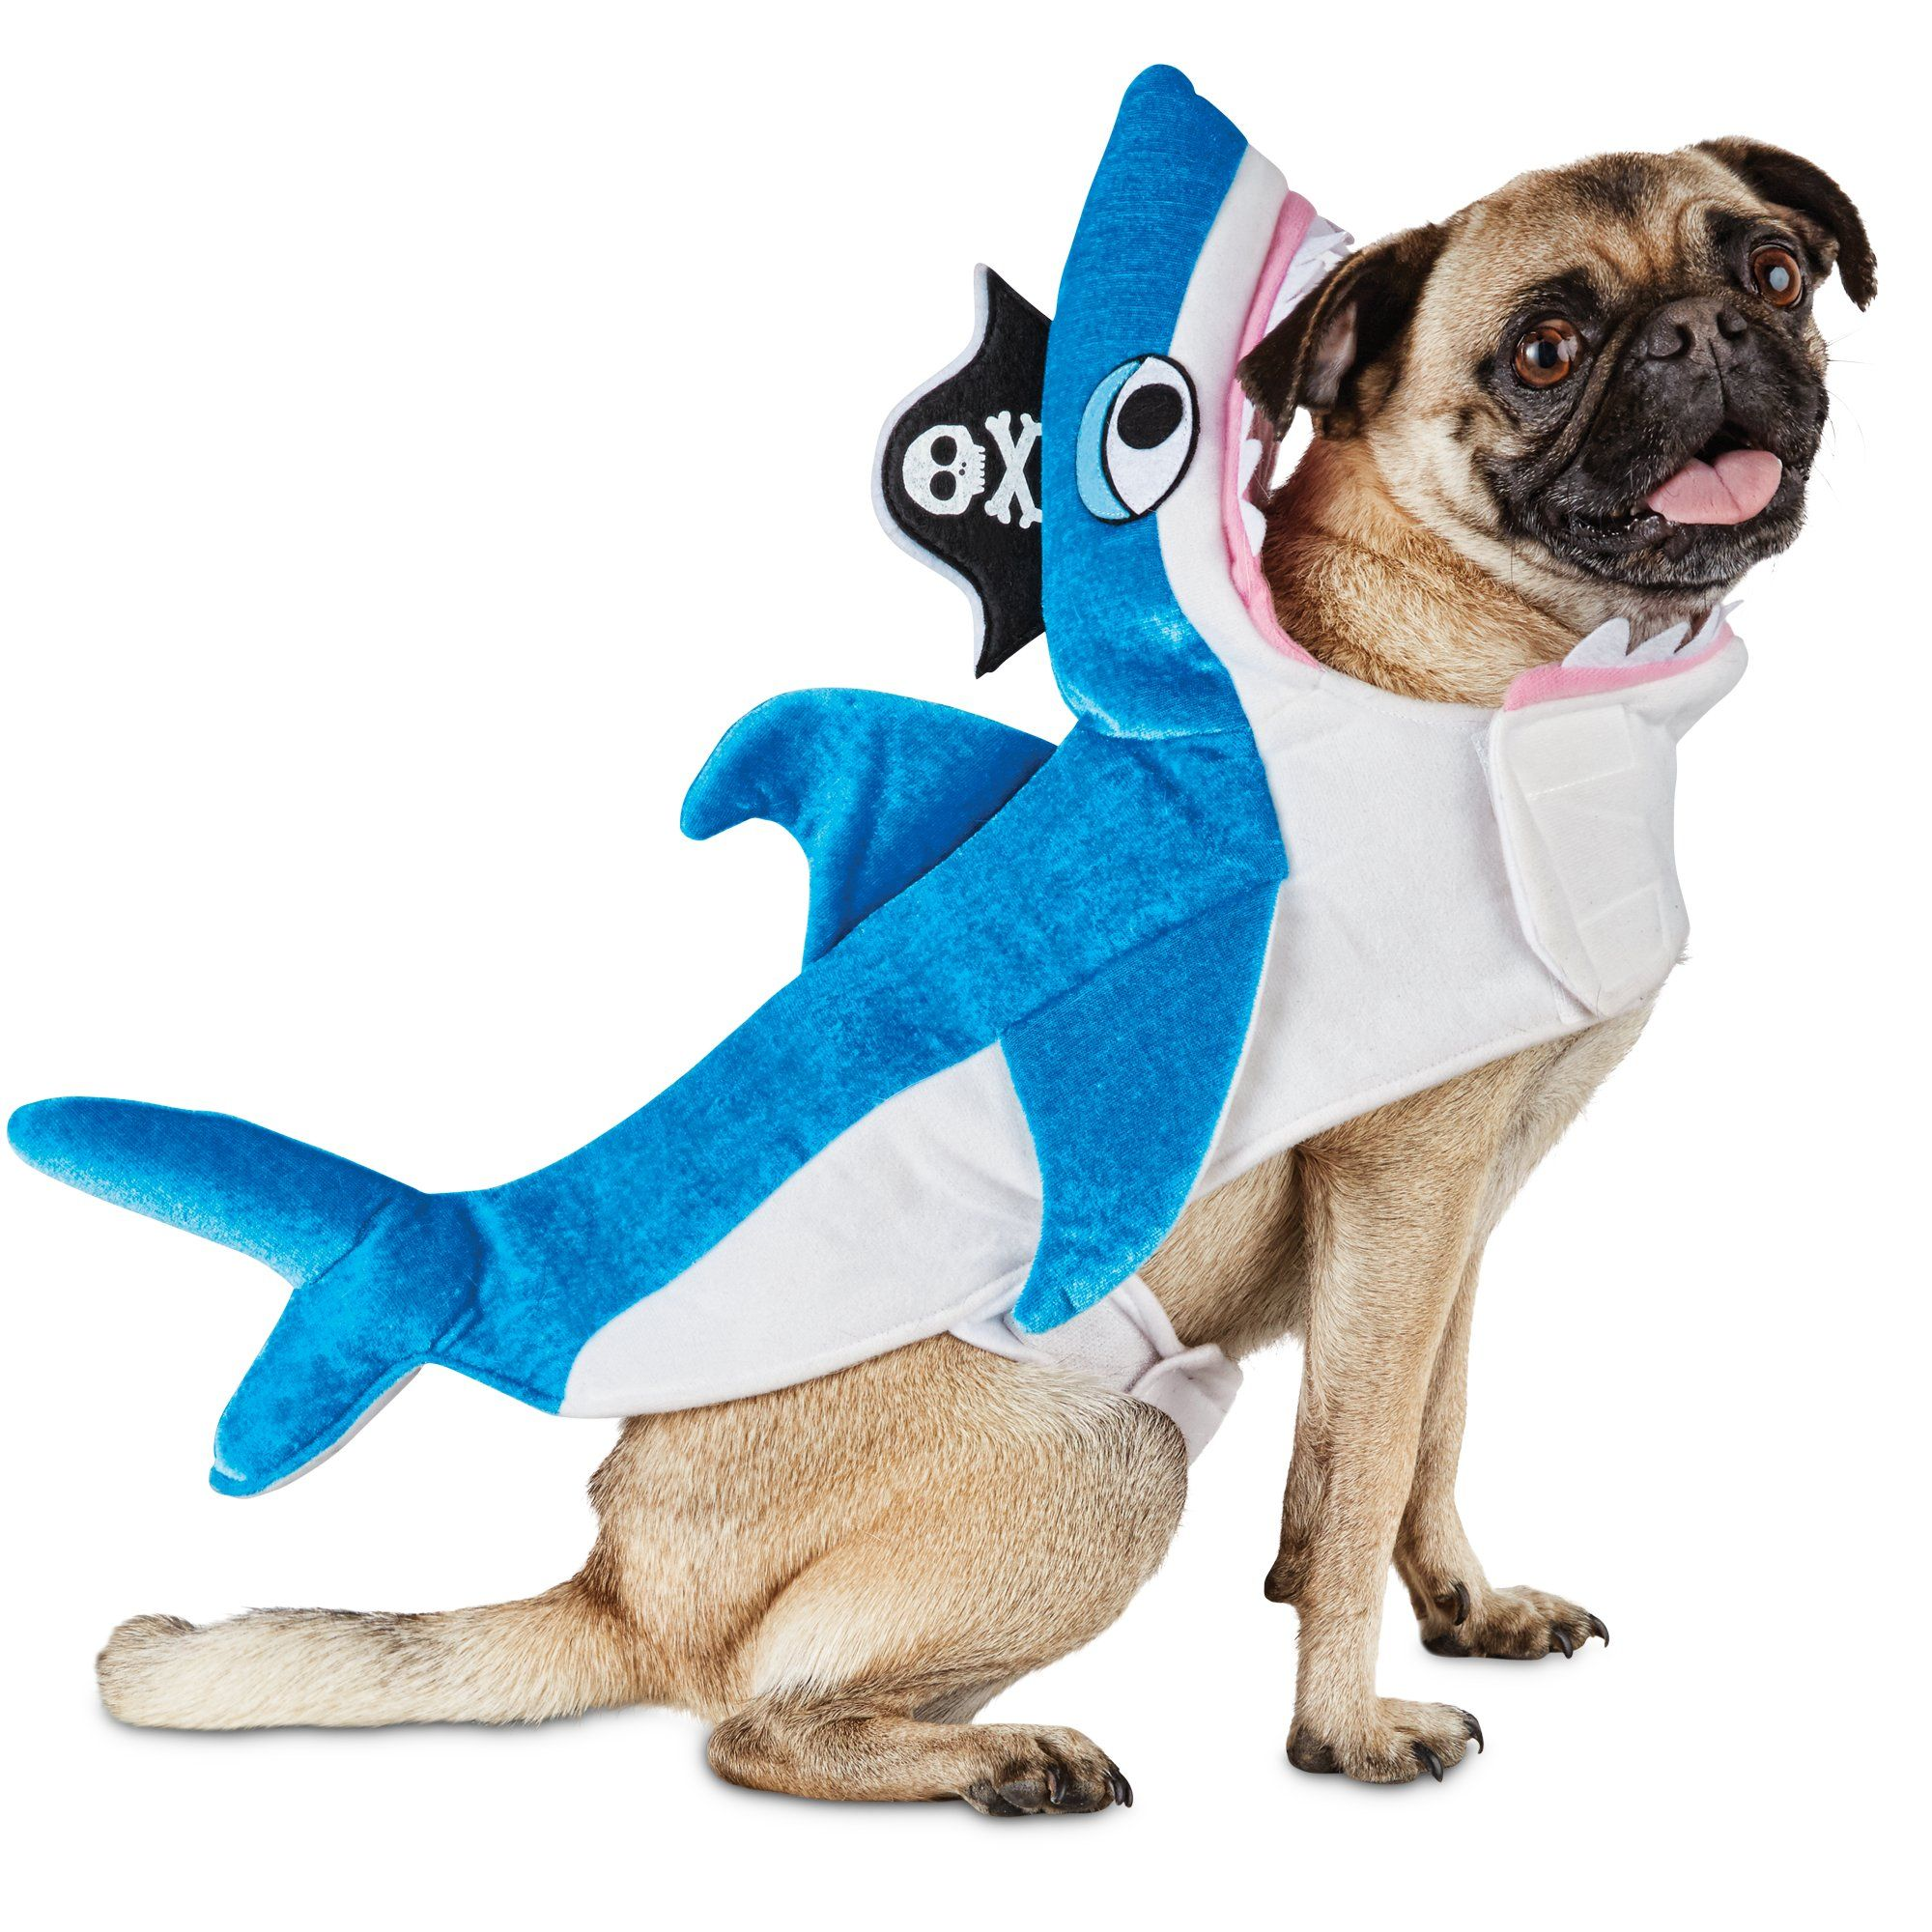 Dog u0026 Cat Shark Costume | Dog u0026 Cat Pirate Shark Costume | Petco  sc 1 st  Pinterest & Dog u0026 Cat Shark Costume | Dog u0026 Cat Pirate Shark Costume | Petco ...